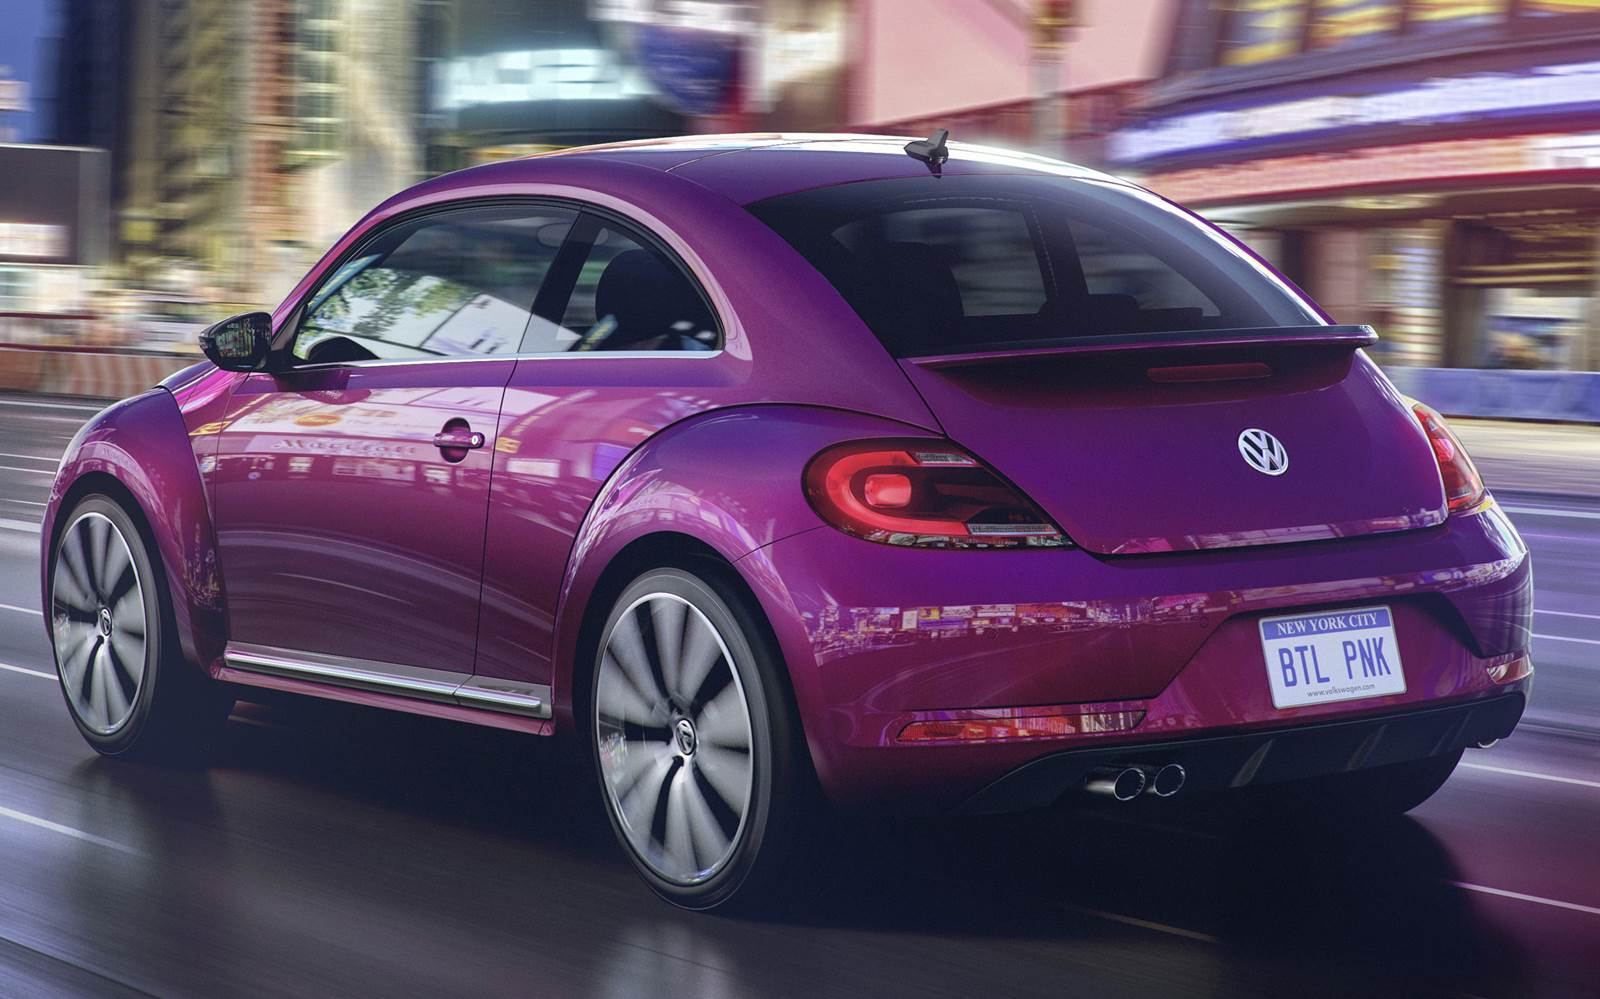 VW Fusca 2016 - Pink Edition